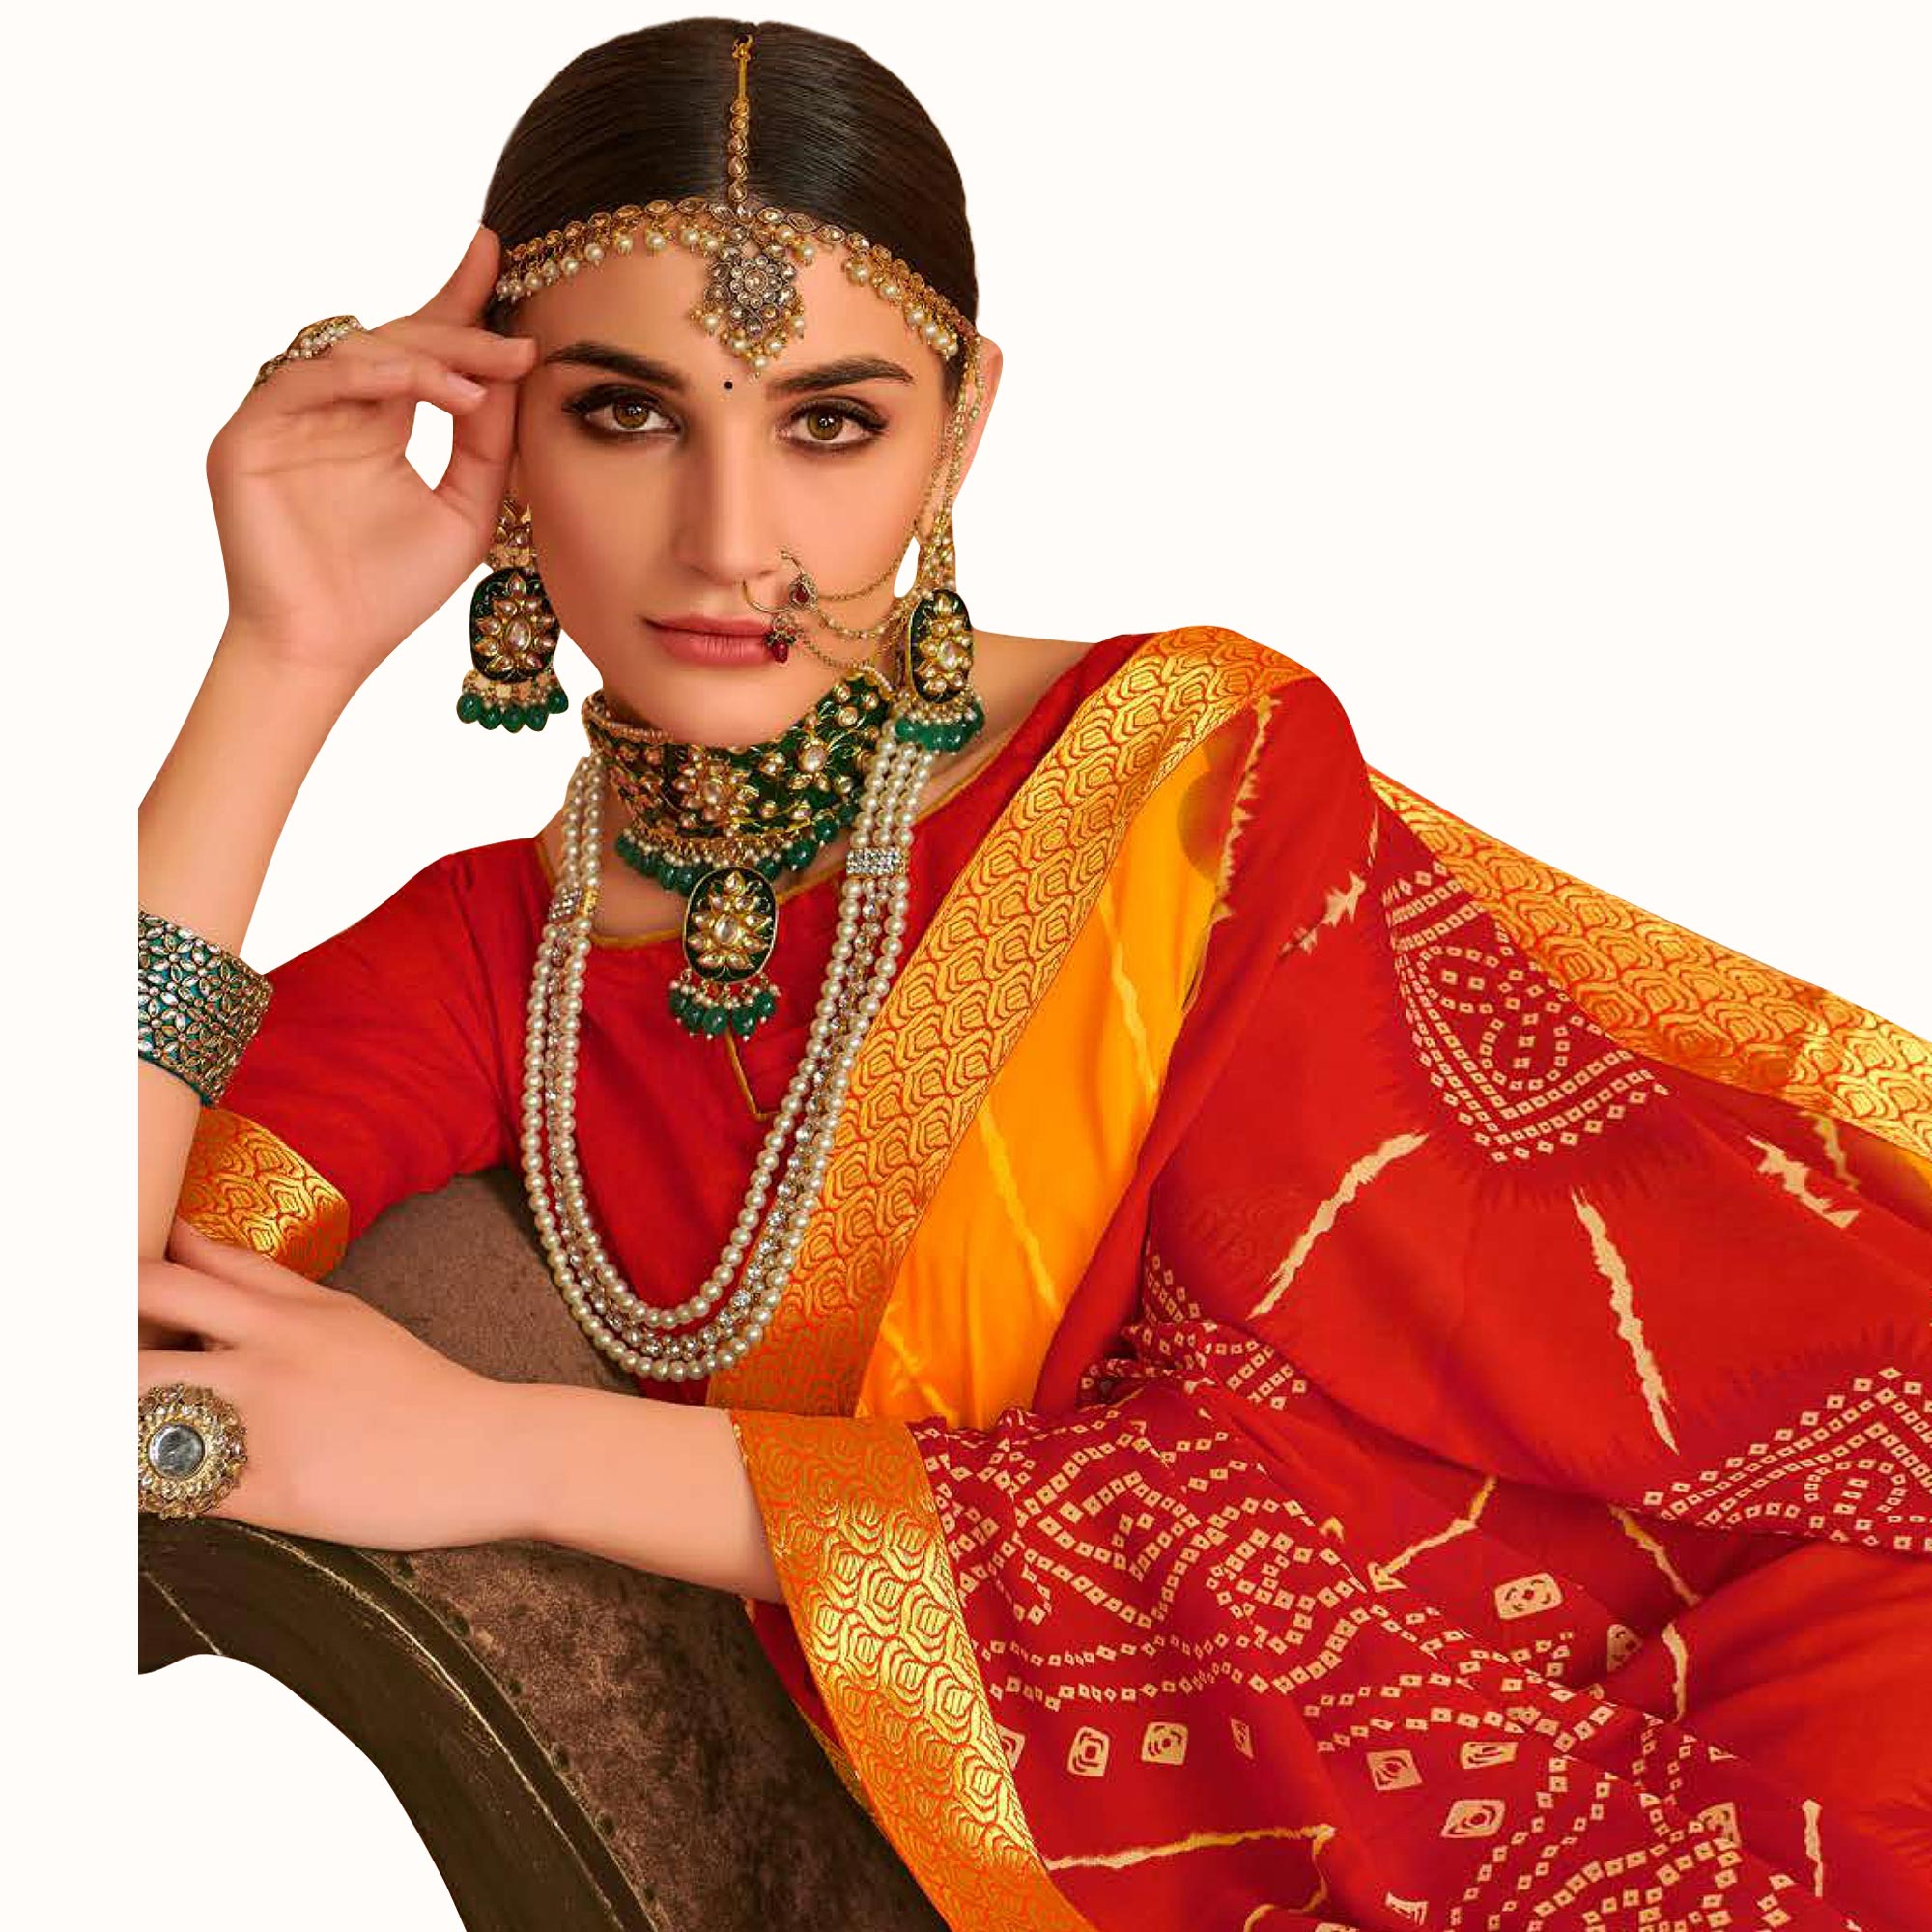 Captivating Yellow-Red Colored Bandhani Printed Heavy Georgette Saree With Jacquard Lace Border